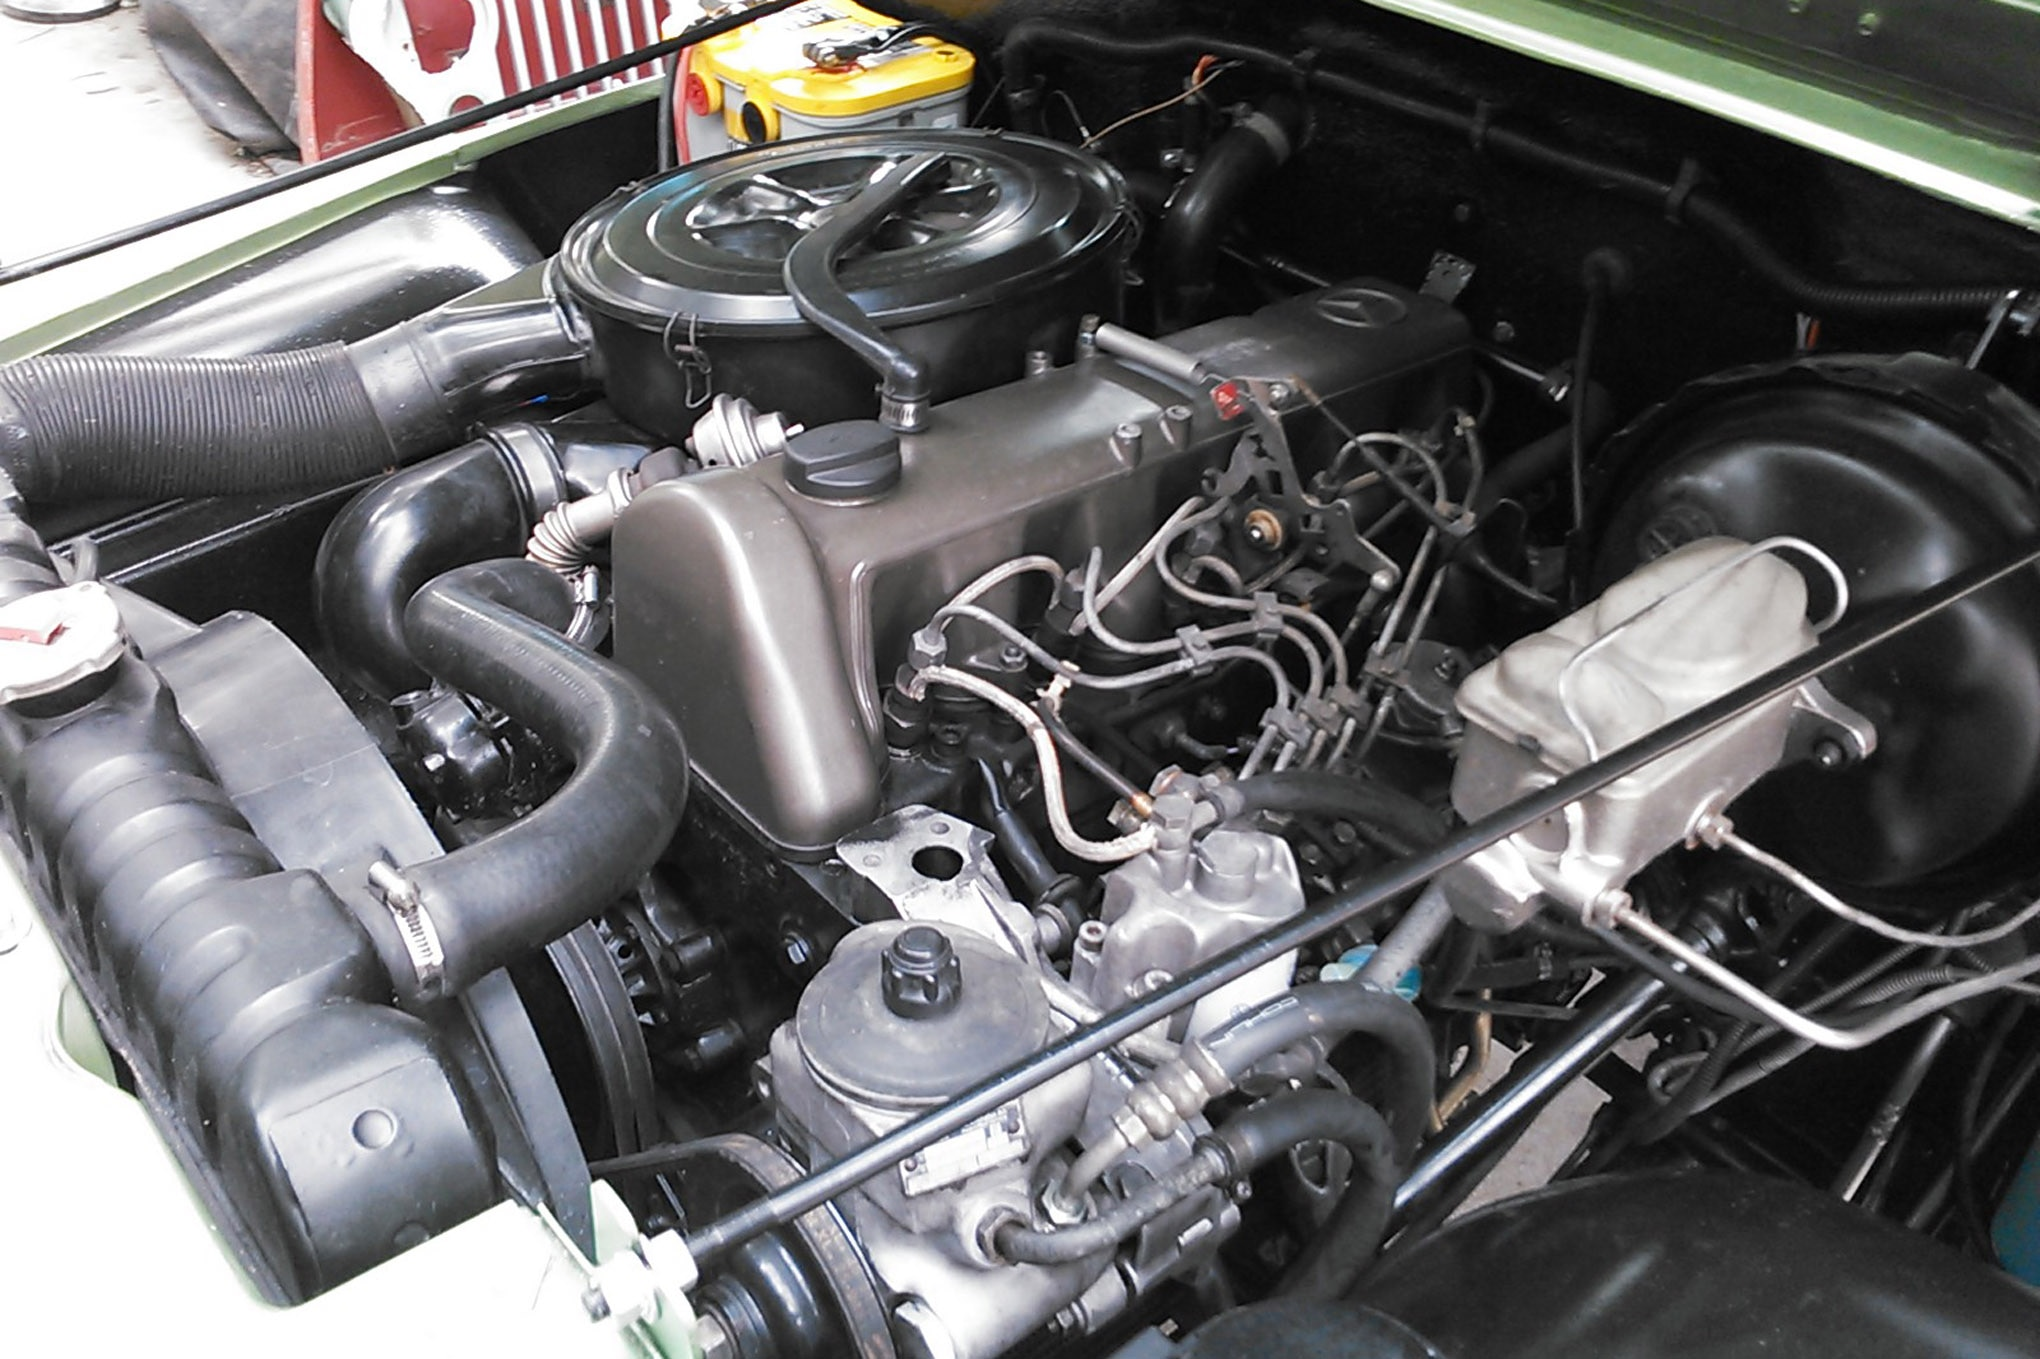 Our Complete Guide to Parts and Providers for Gas-to-Diesel Engine Swaps